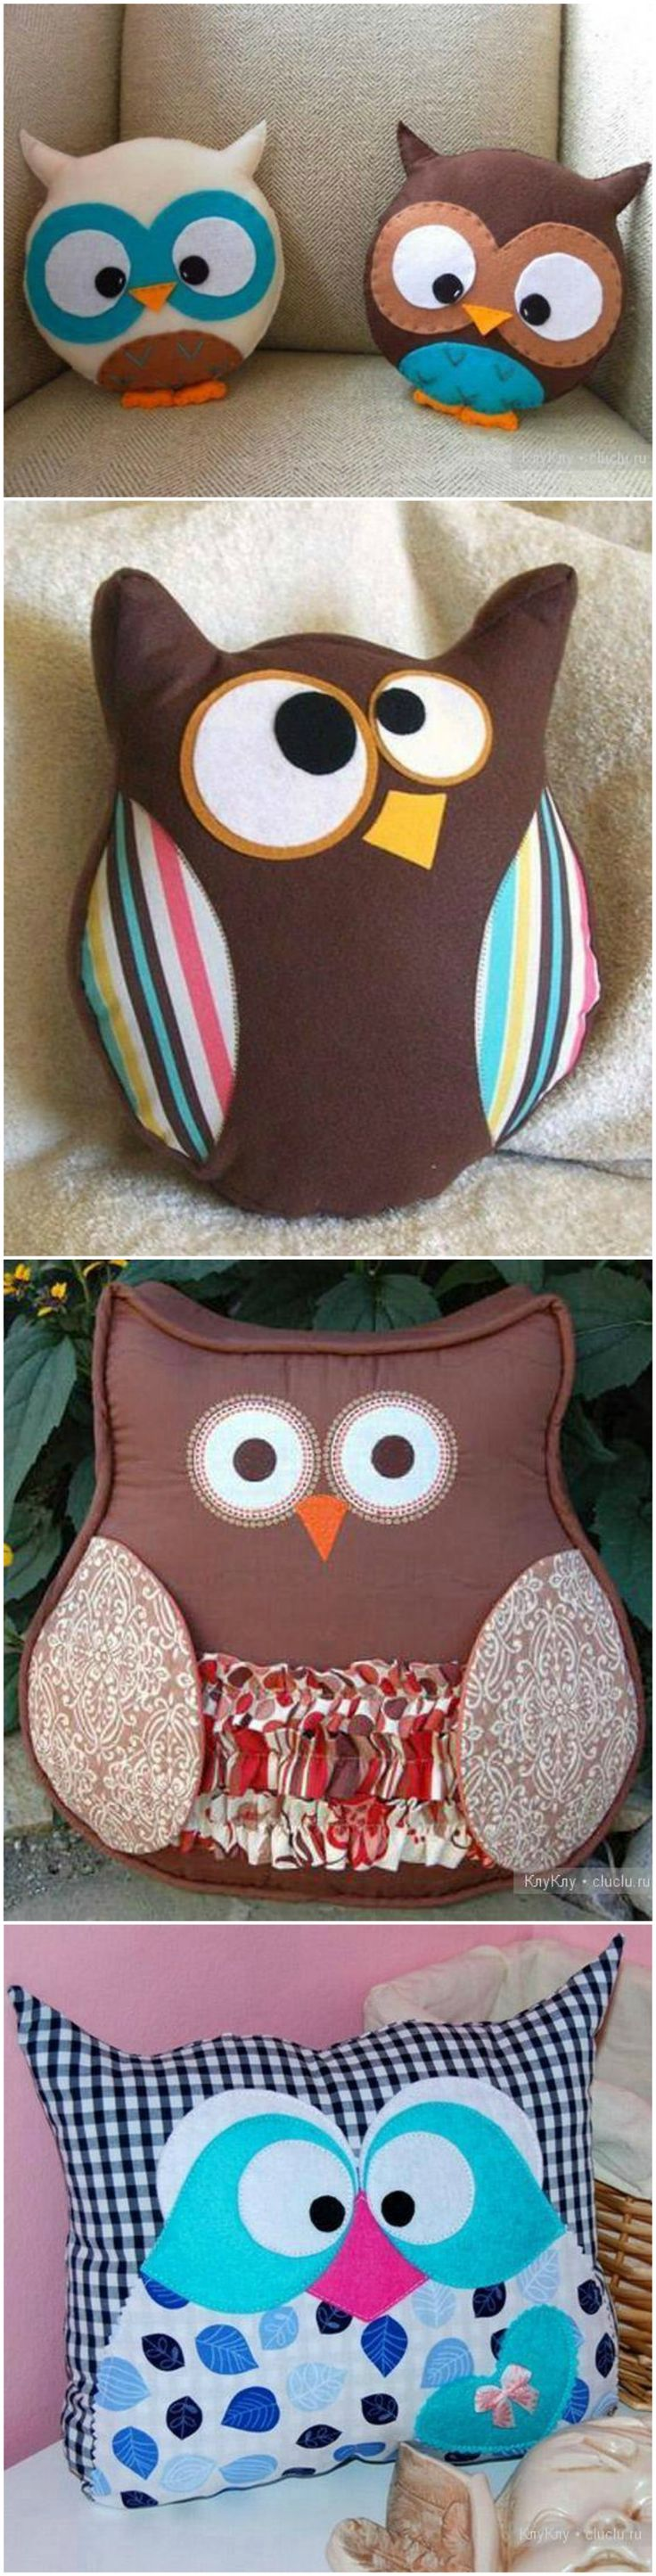 DIY Cute Owl Pillow